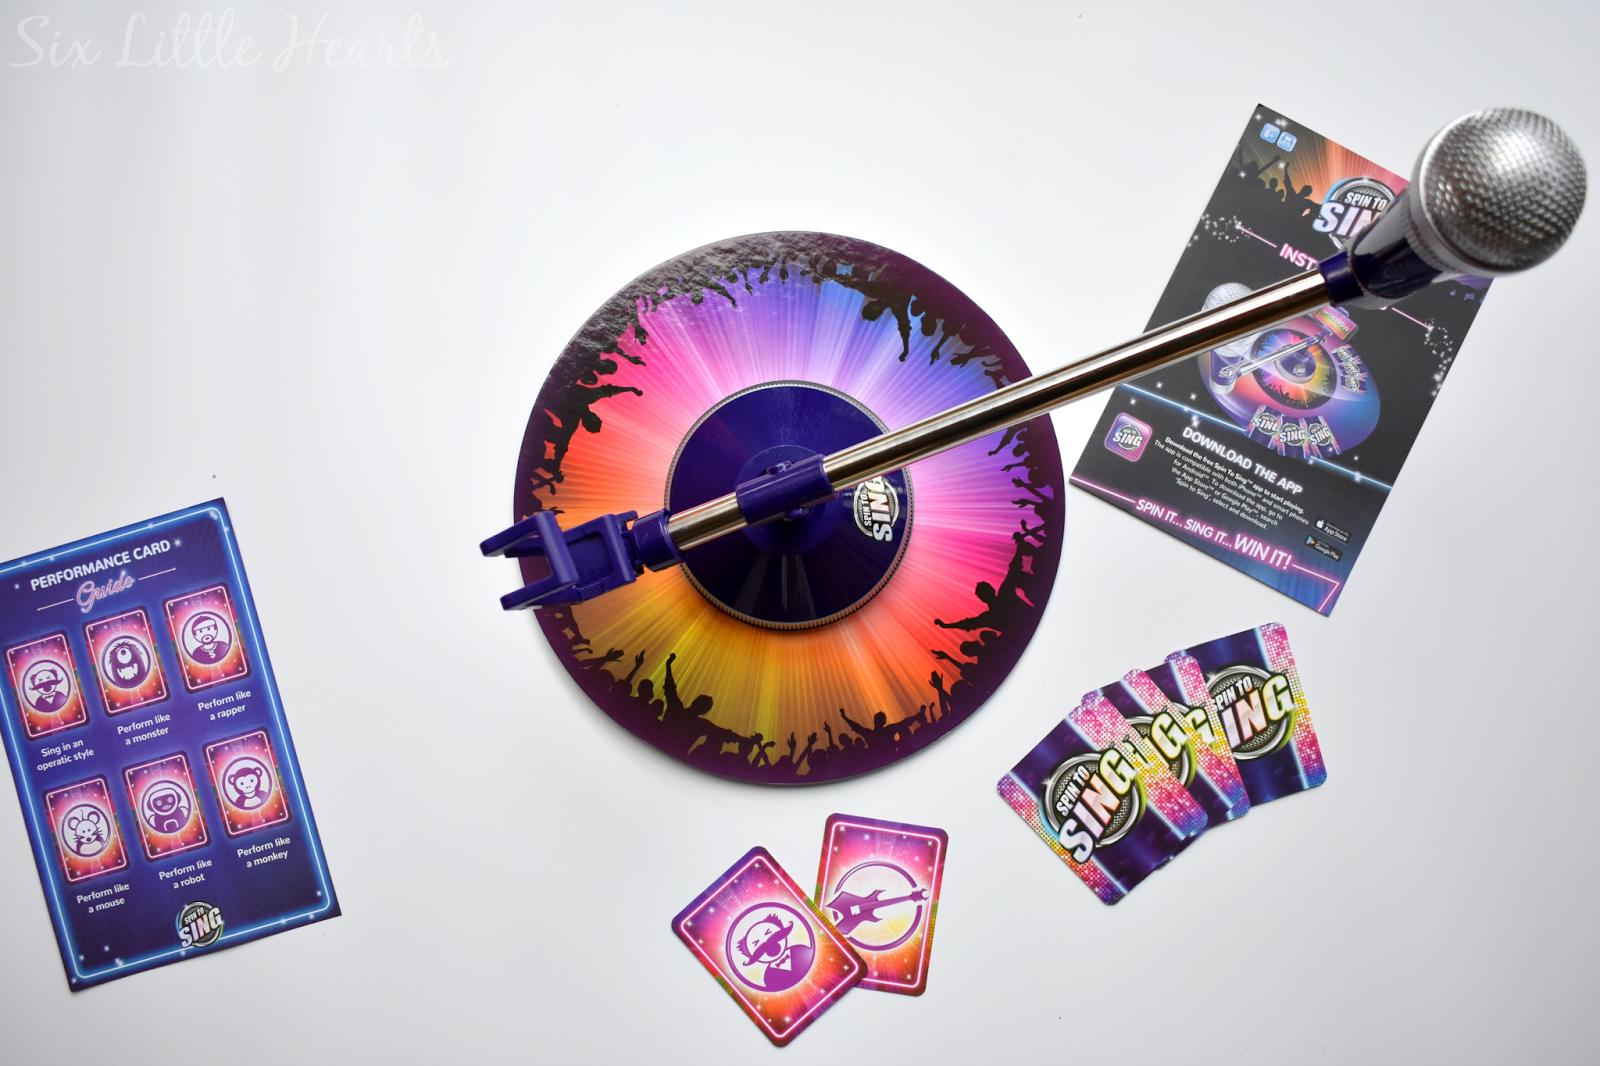 Six little hearts worlds apart spin to sing review a fun new game in this modern age of selfies and mega aspirations for stardom in particular what better way to belt it out than via the exciting new family game spin to solutioingenieria Gallery